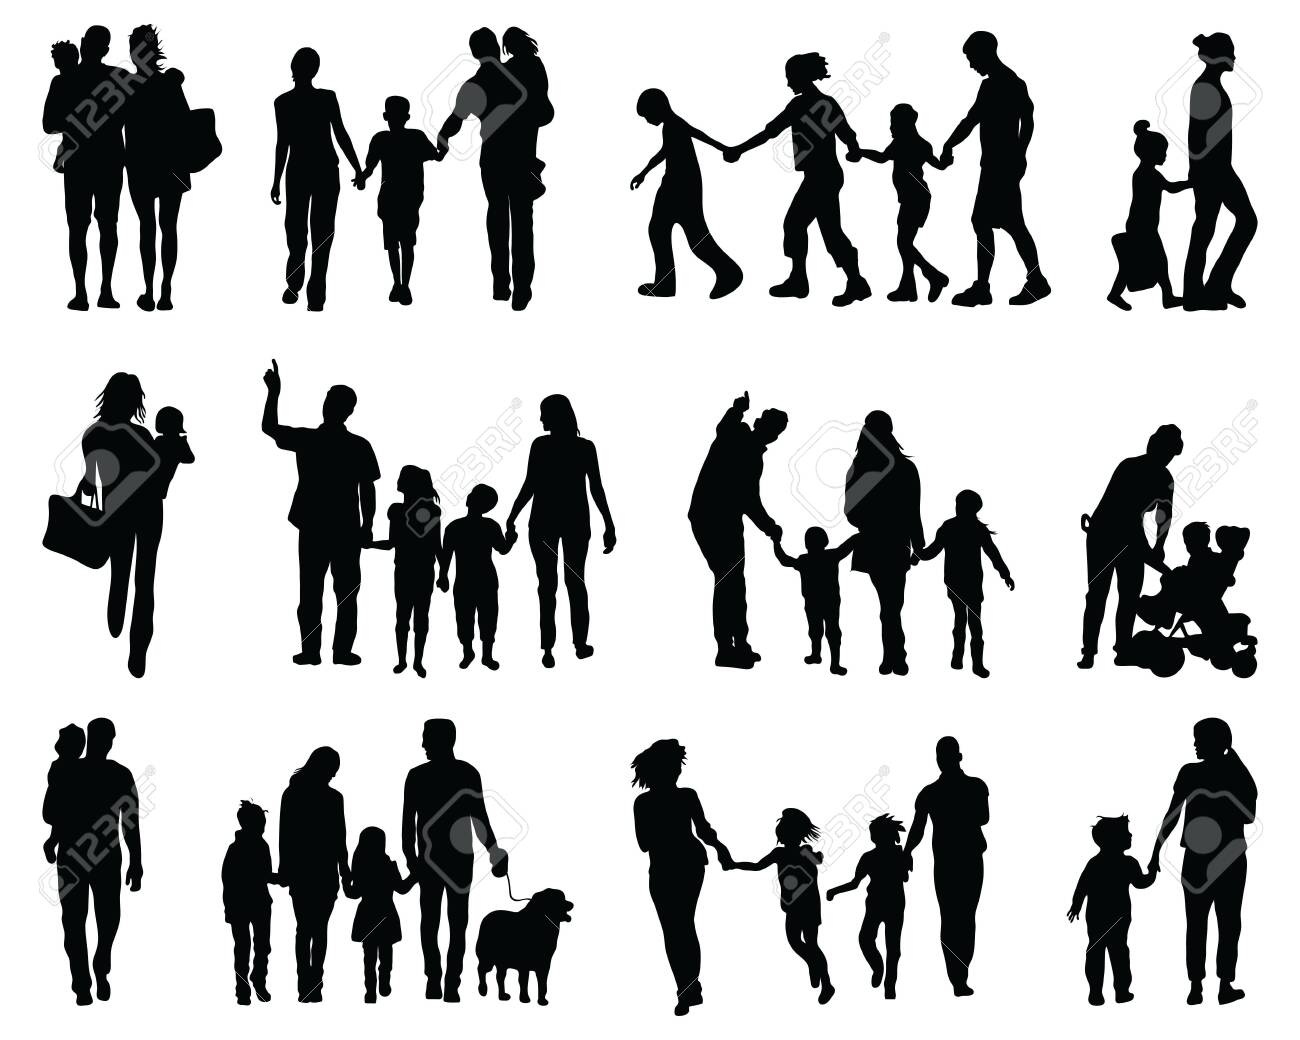 Black silhouettes of families in walking on a white background - 142219821